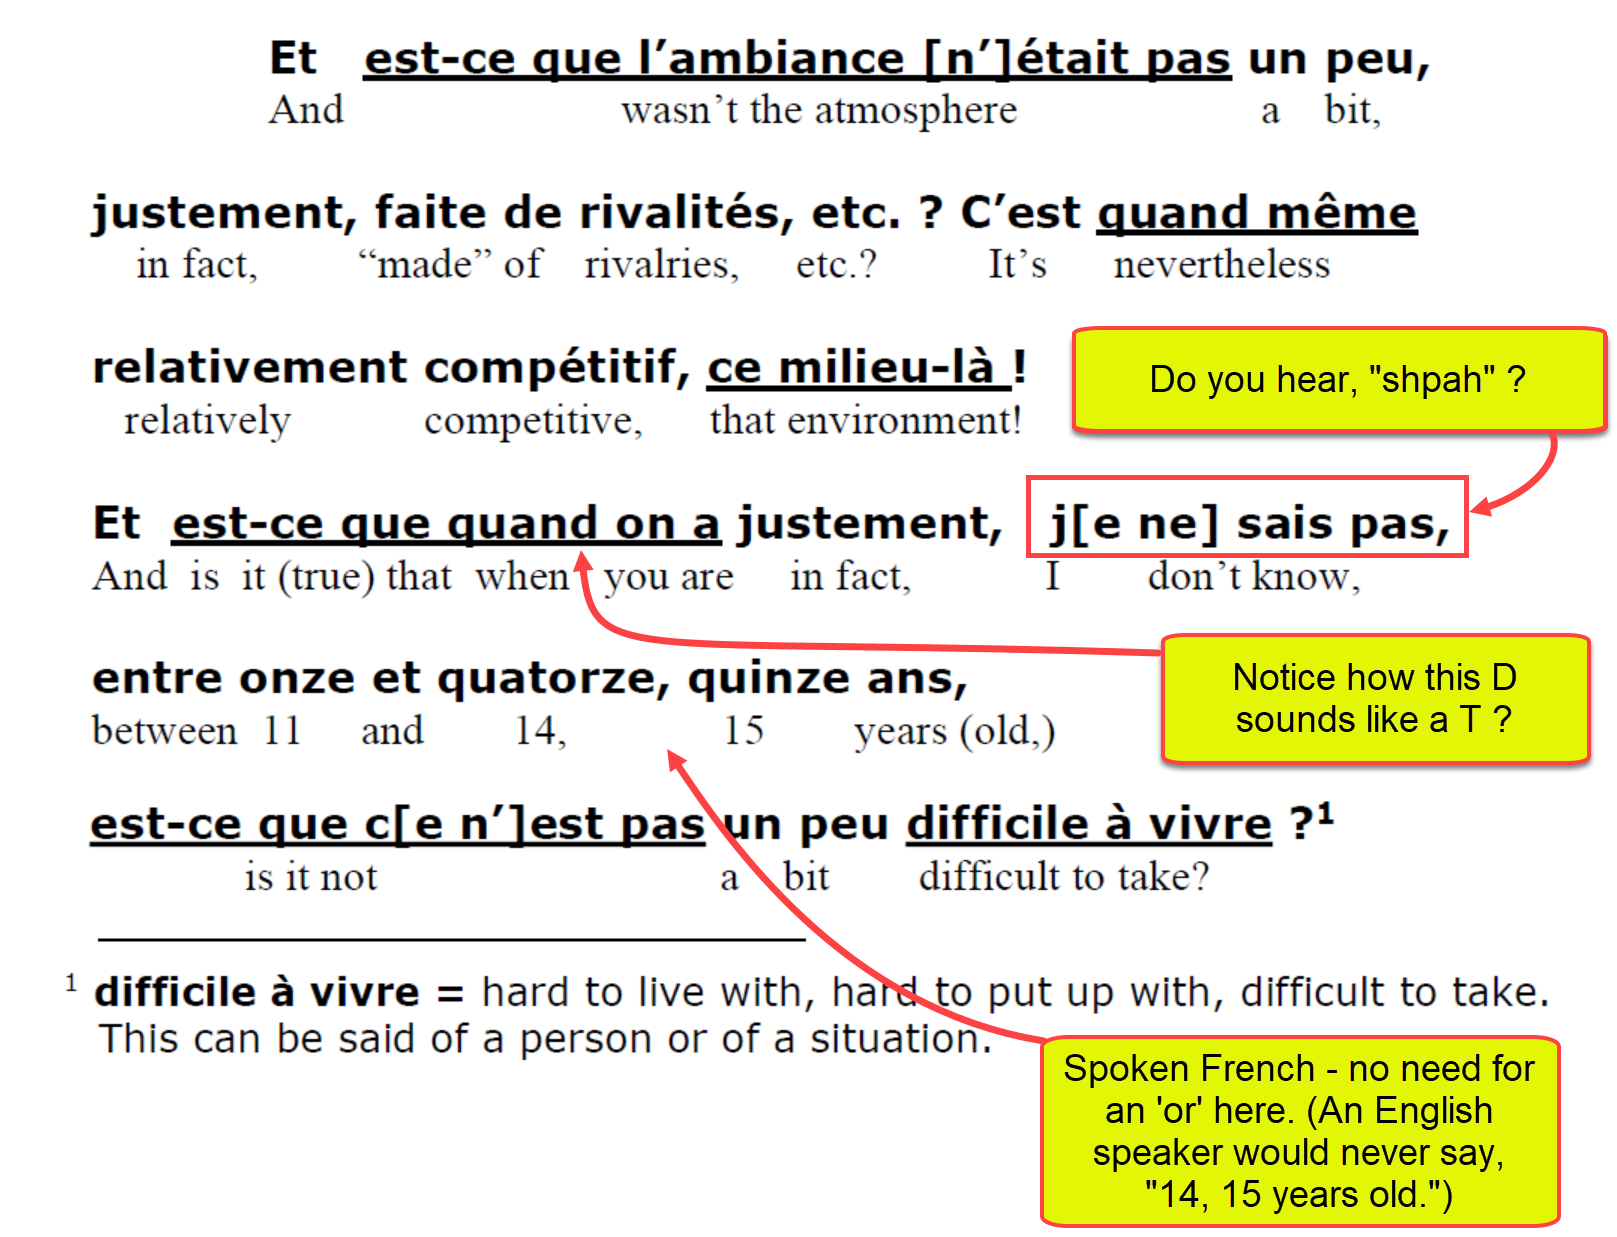 French Listening Comprehension - je ne sais pas